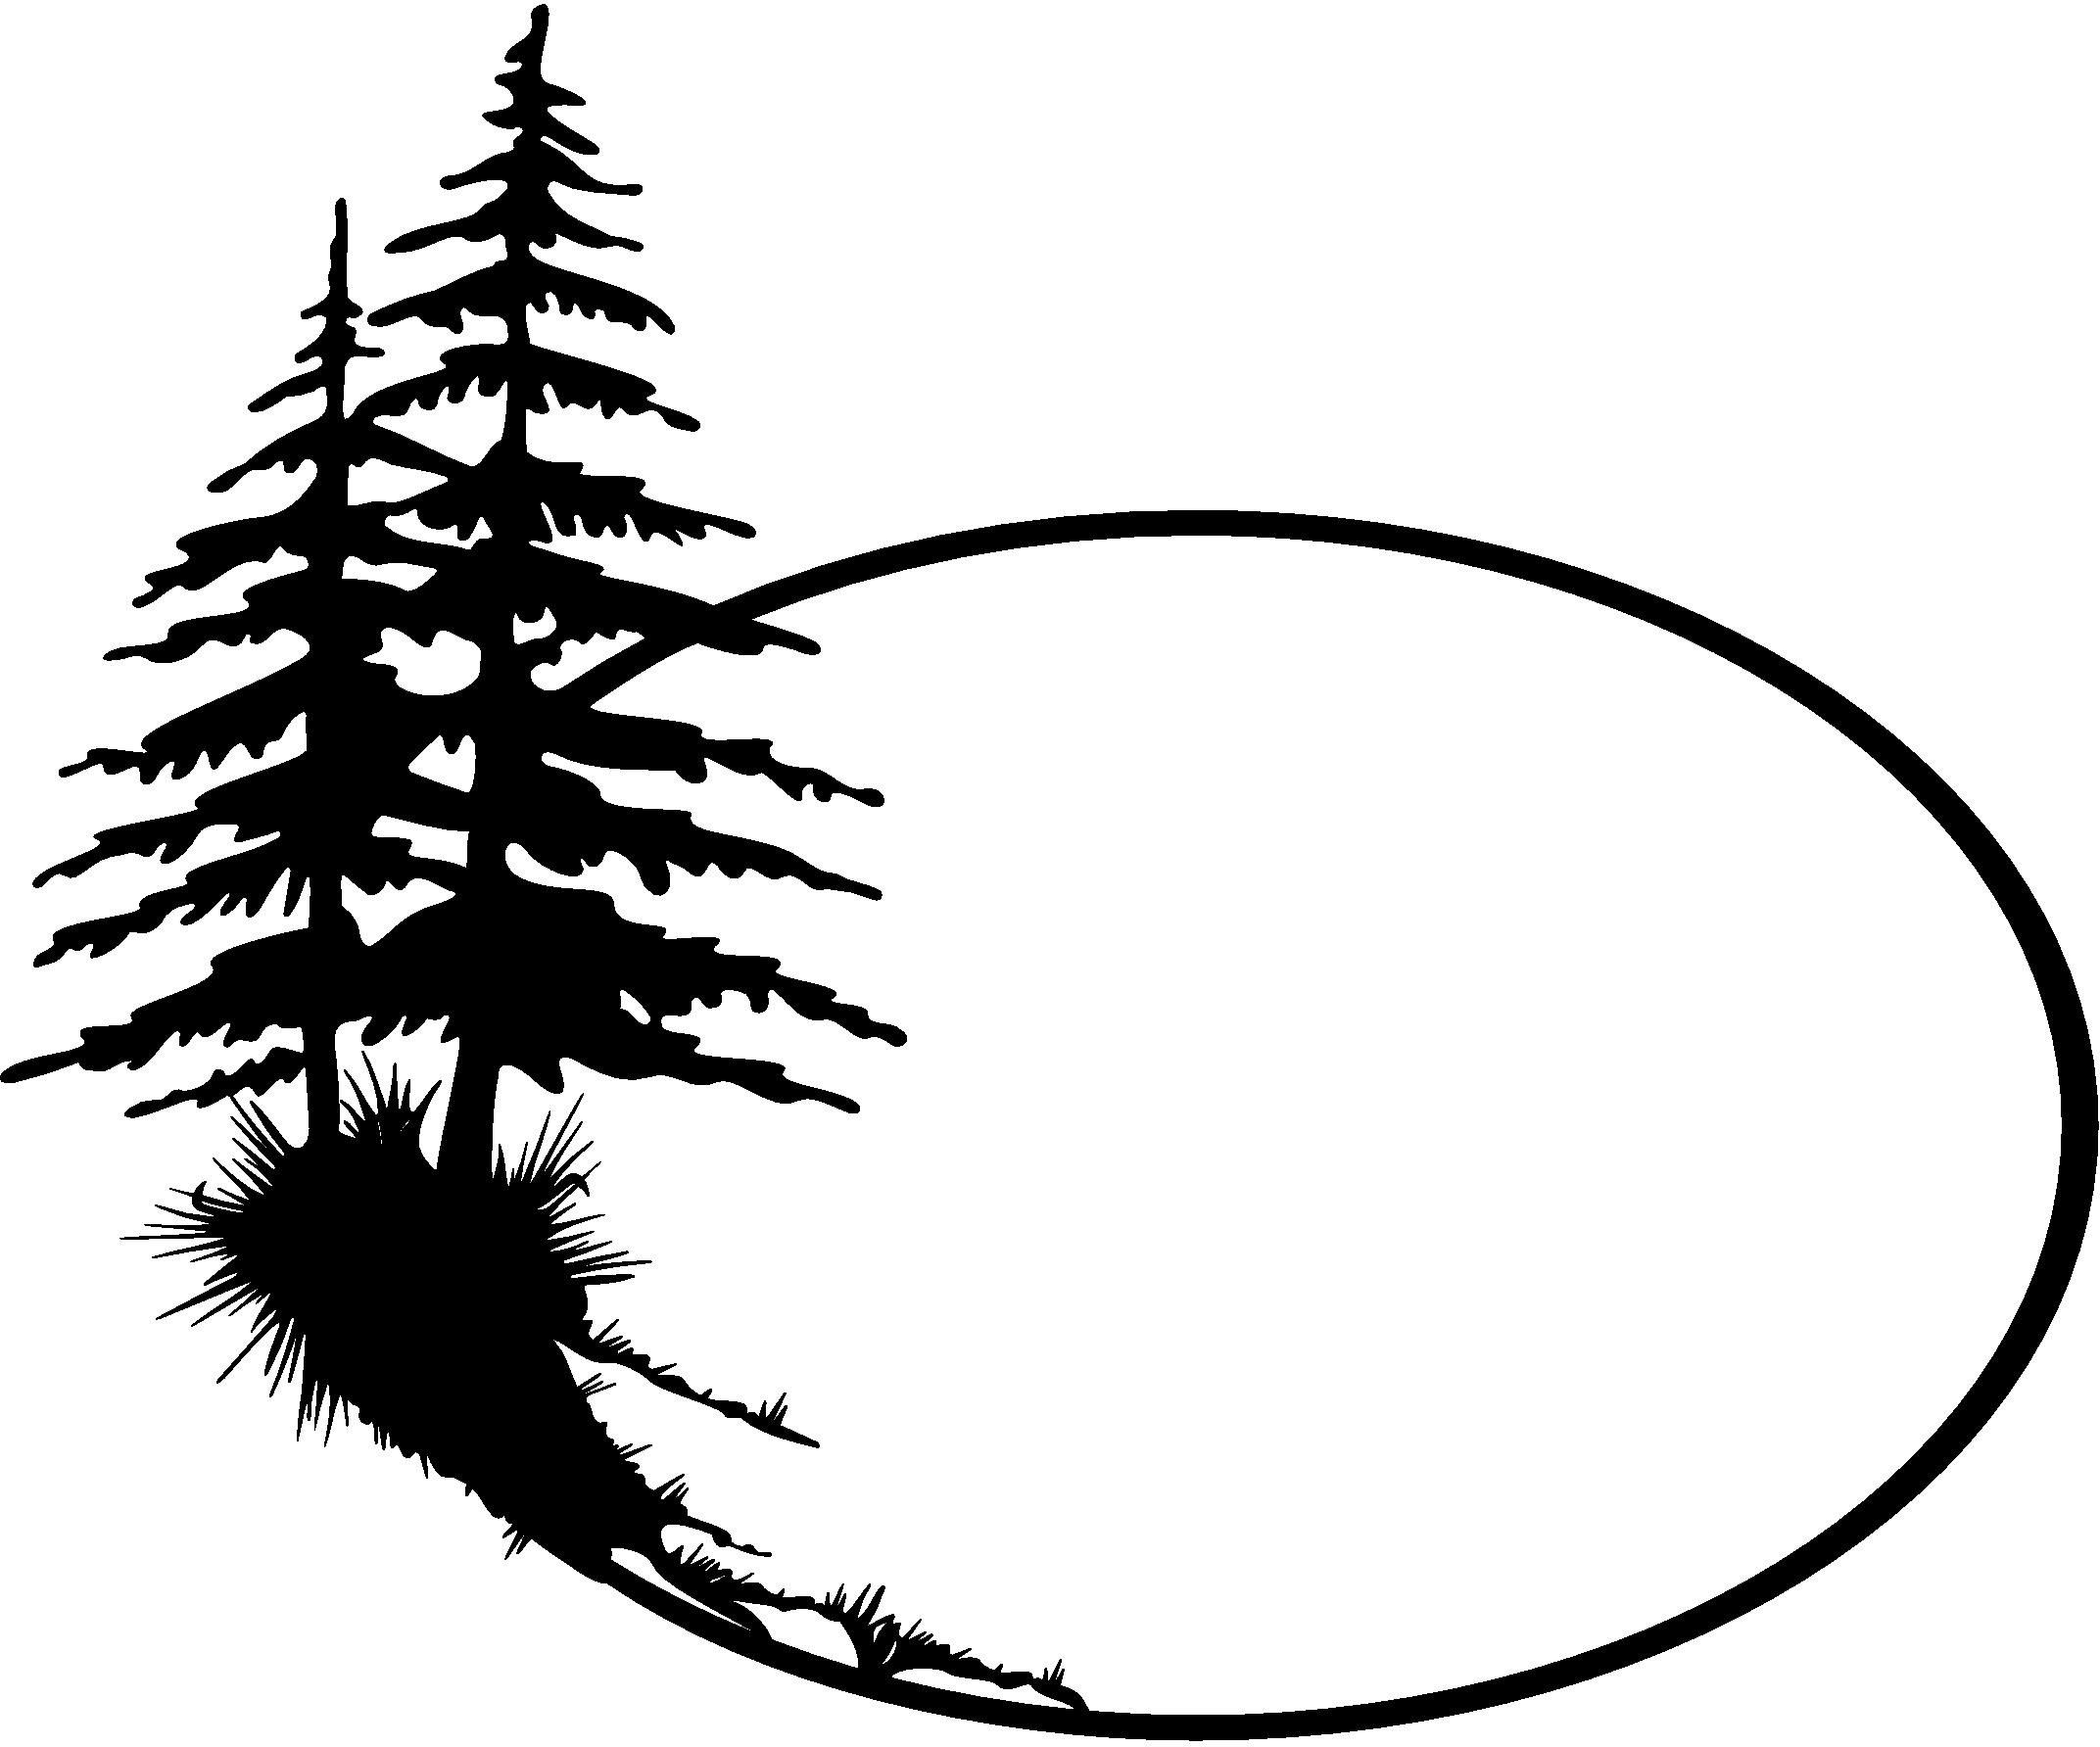 You can use any of the pine tree images clip art and use